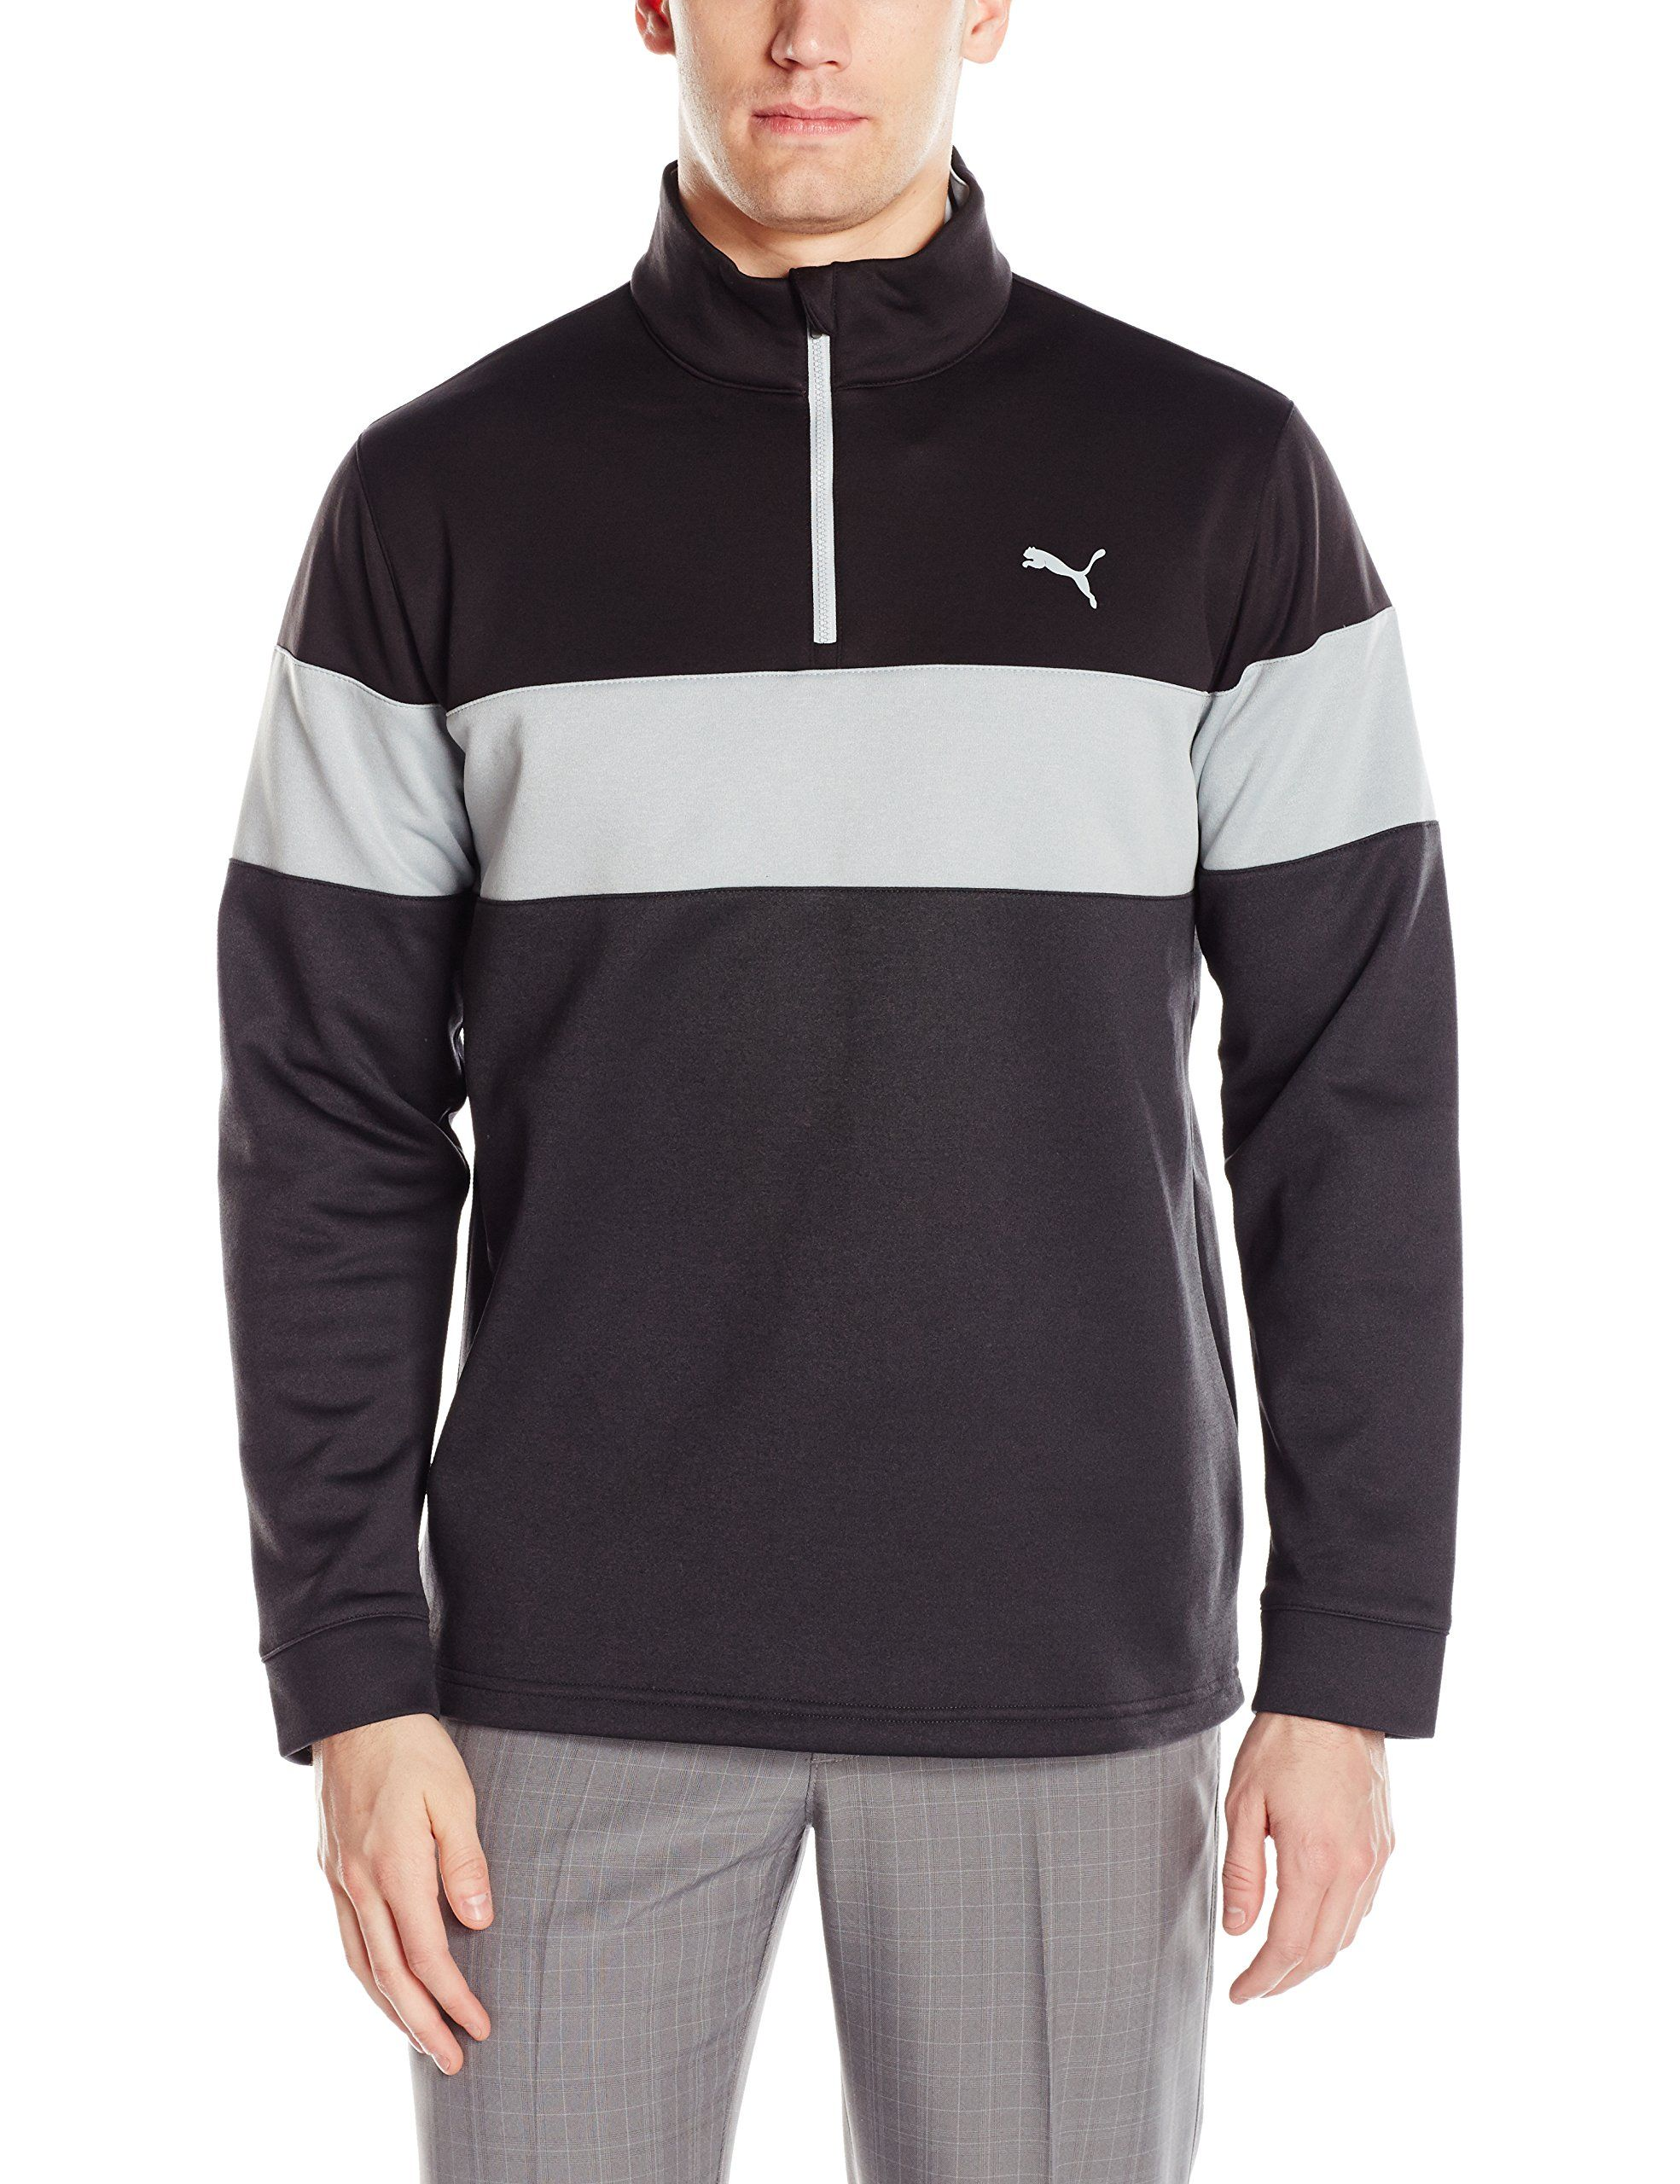 5739cbc5f686 Men Golf Clothing     PUMA Golf 2017 Mens Pwrwarm 1 4 Zip Popover Dark Grey  Heather Black Medium -- More info might be found at the picture link.